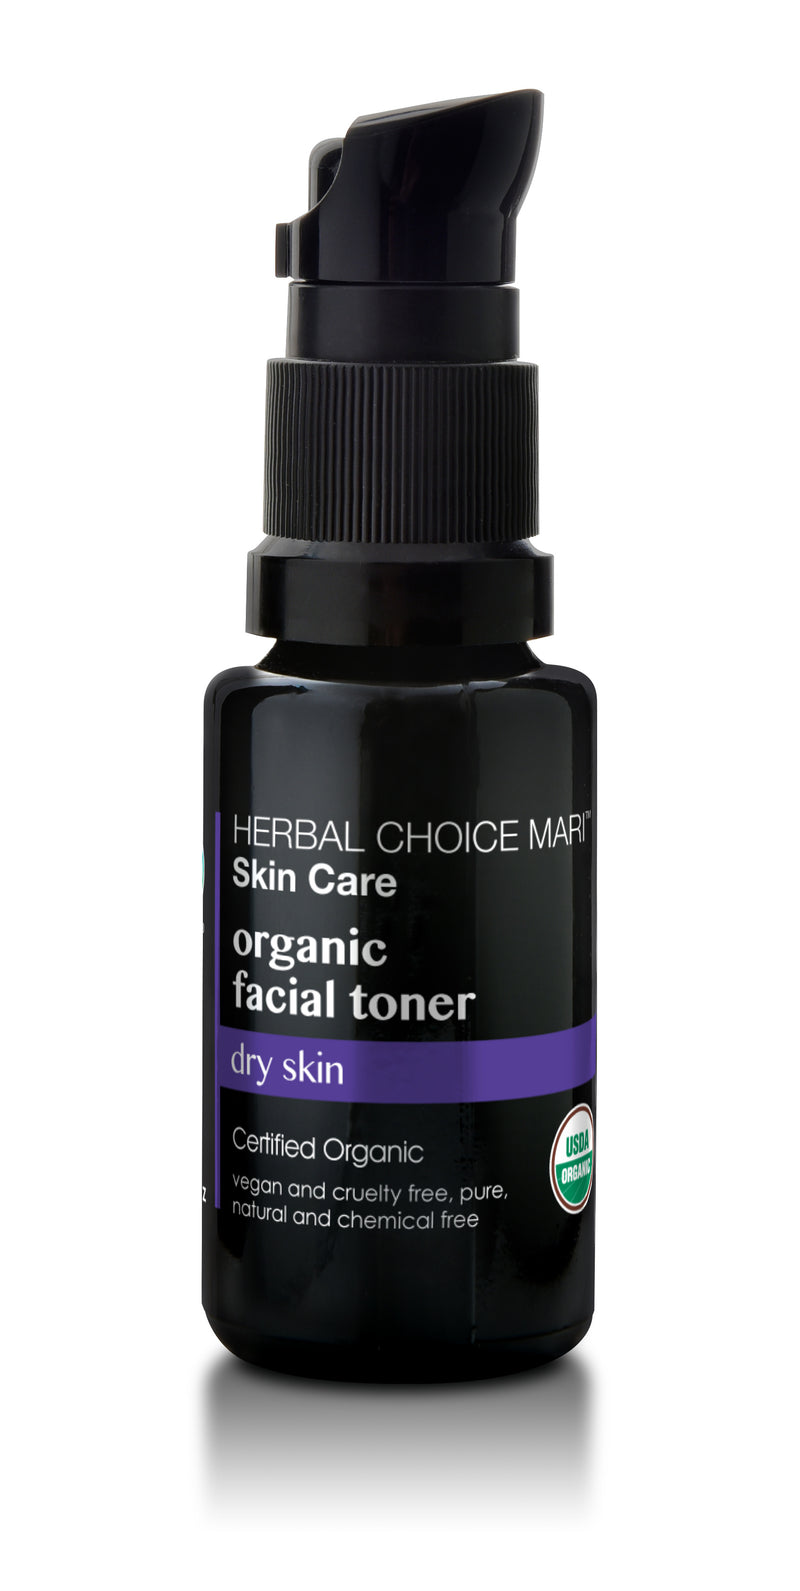 Herbal Choice Mari Organic Facial Toner, Dry Skin - Herbal Choice Mari Organic Facial Toner, Dry Skin - Herbal Choice Mari Organic Facial Toner, Dry Skin